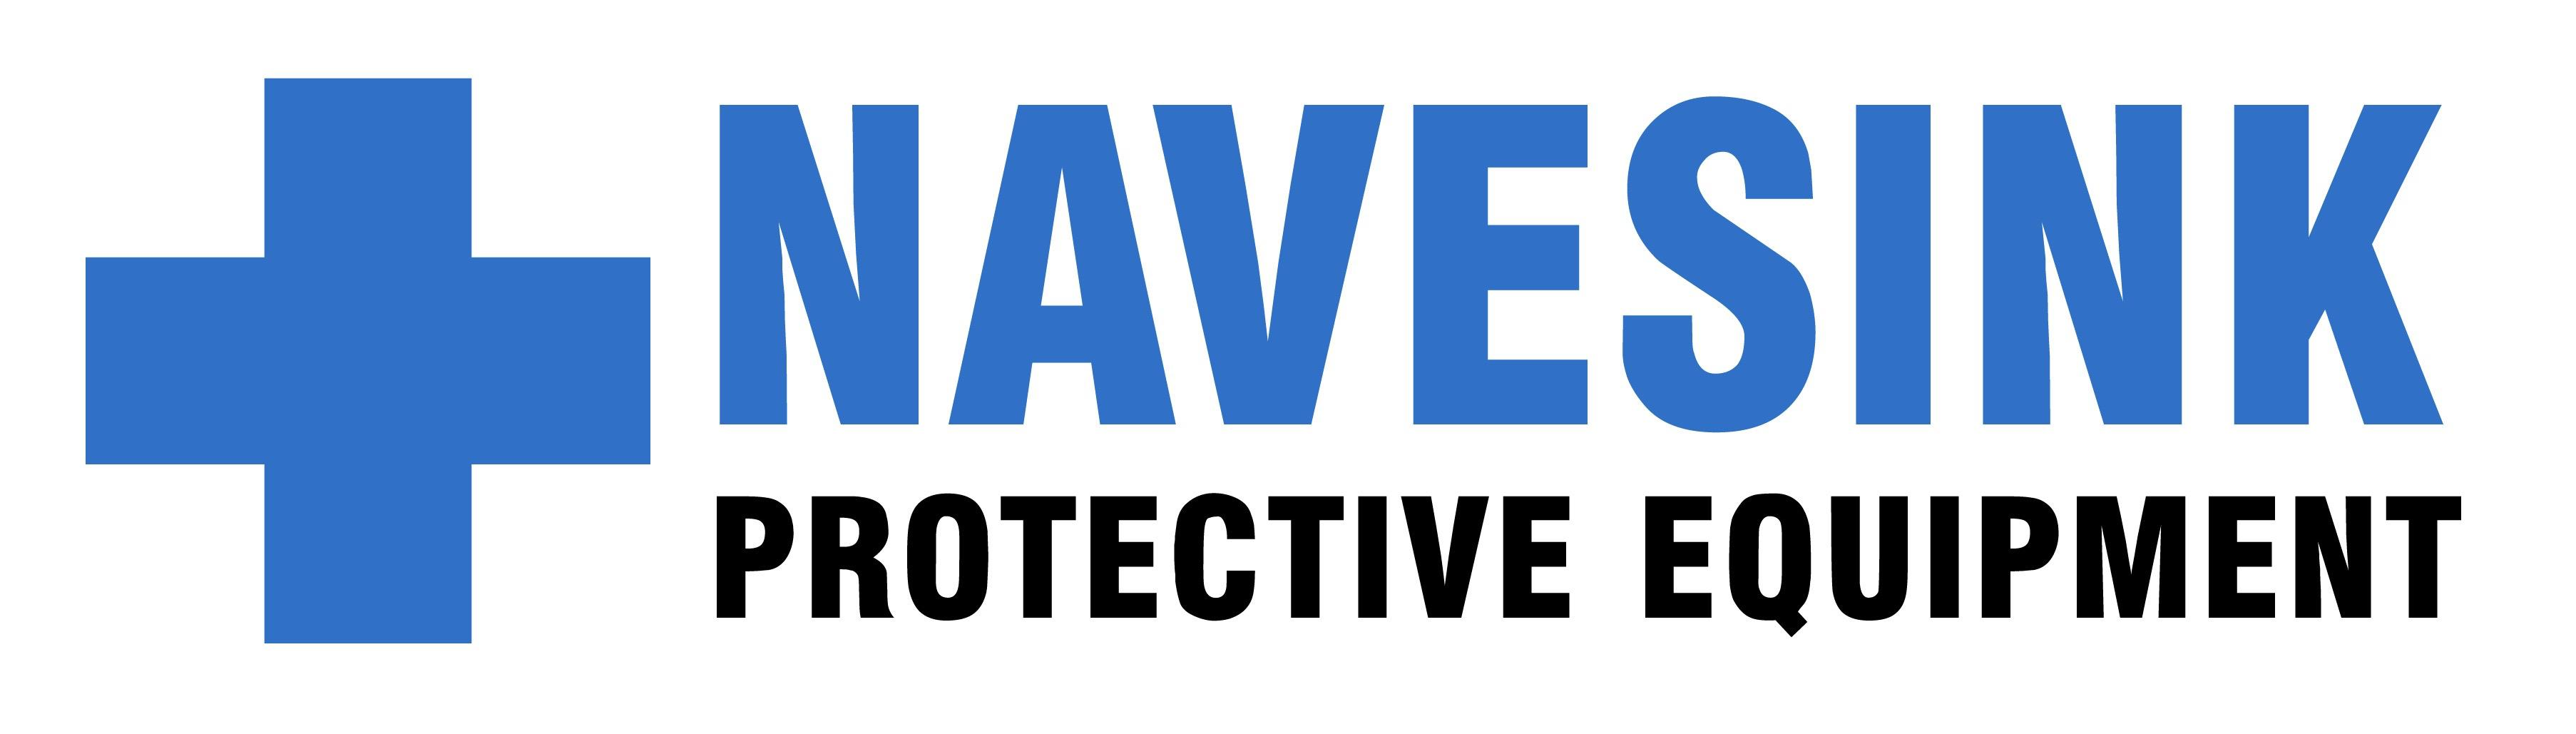 Navesink Protective Equipment Logo